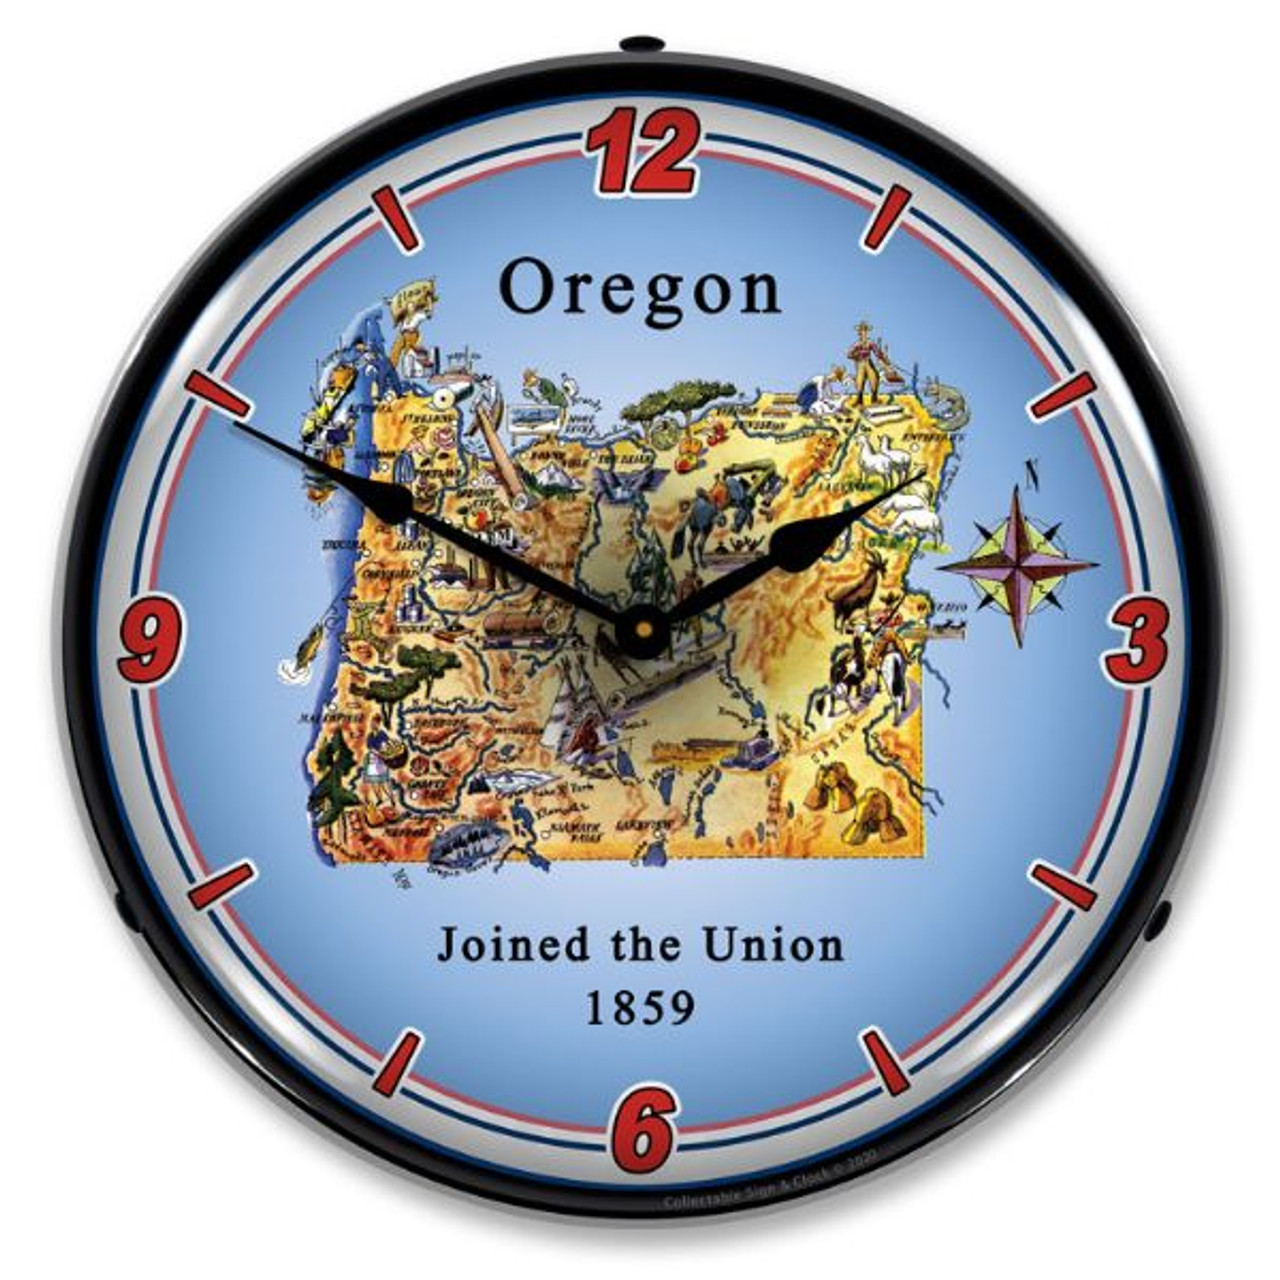 State of Oregon LED Lighted Wall Clock 14 x 14 Inches